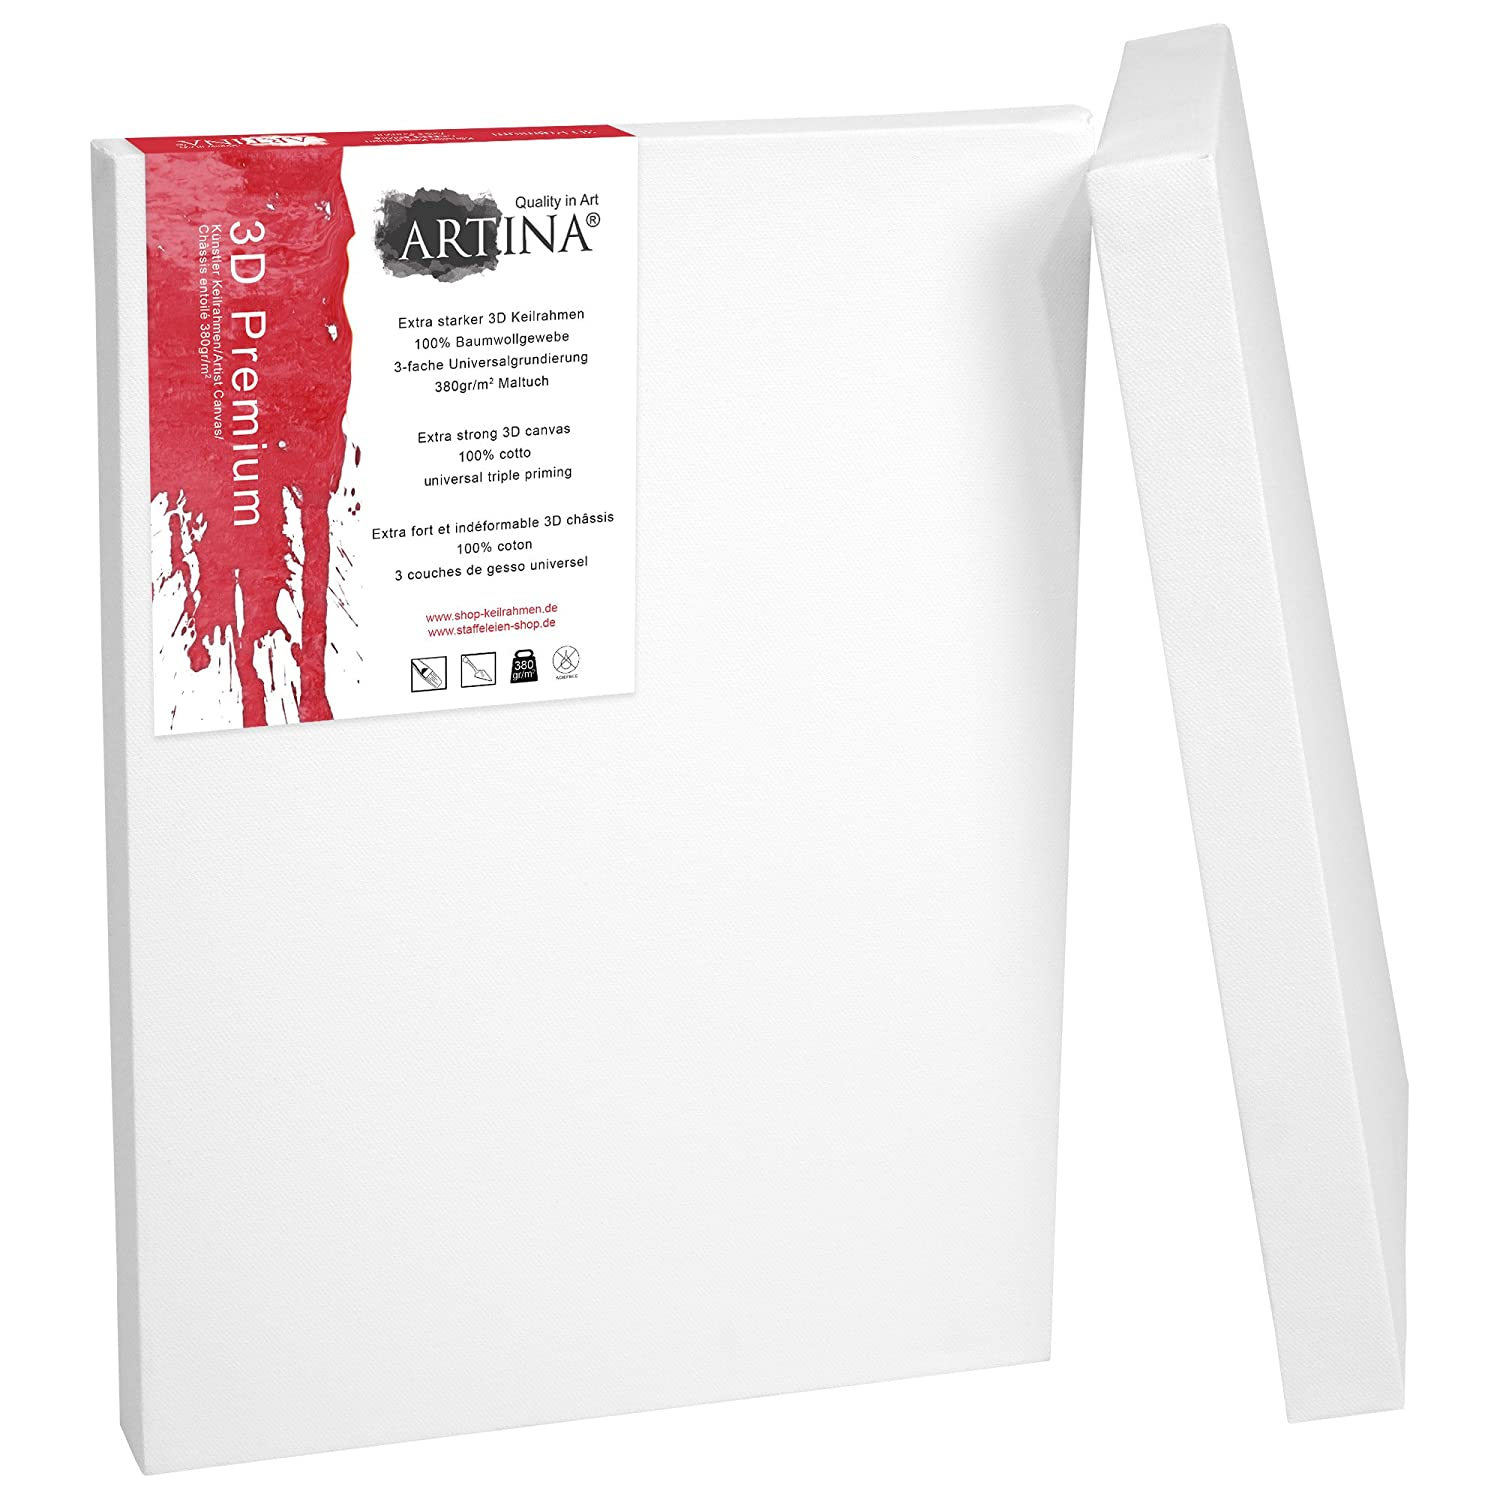 Artina 2 Deep Edge Canvases 40 x 70 cm Premium Quality Blank Art Canvas Bulk Stretched & Triple Primed 16 x 27 Inch